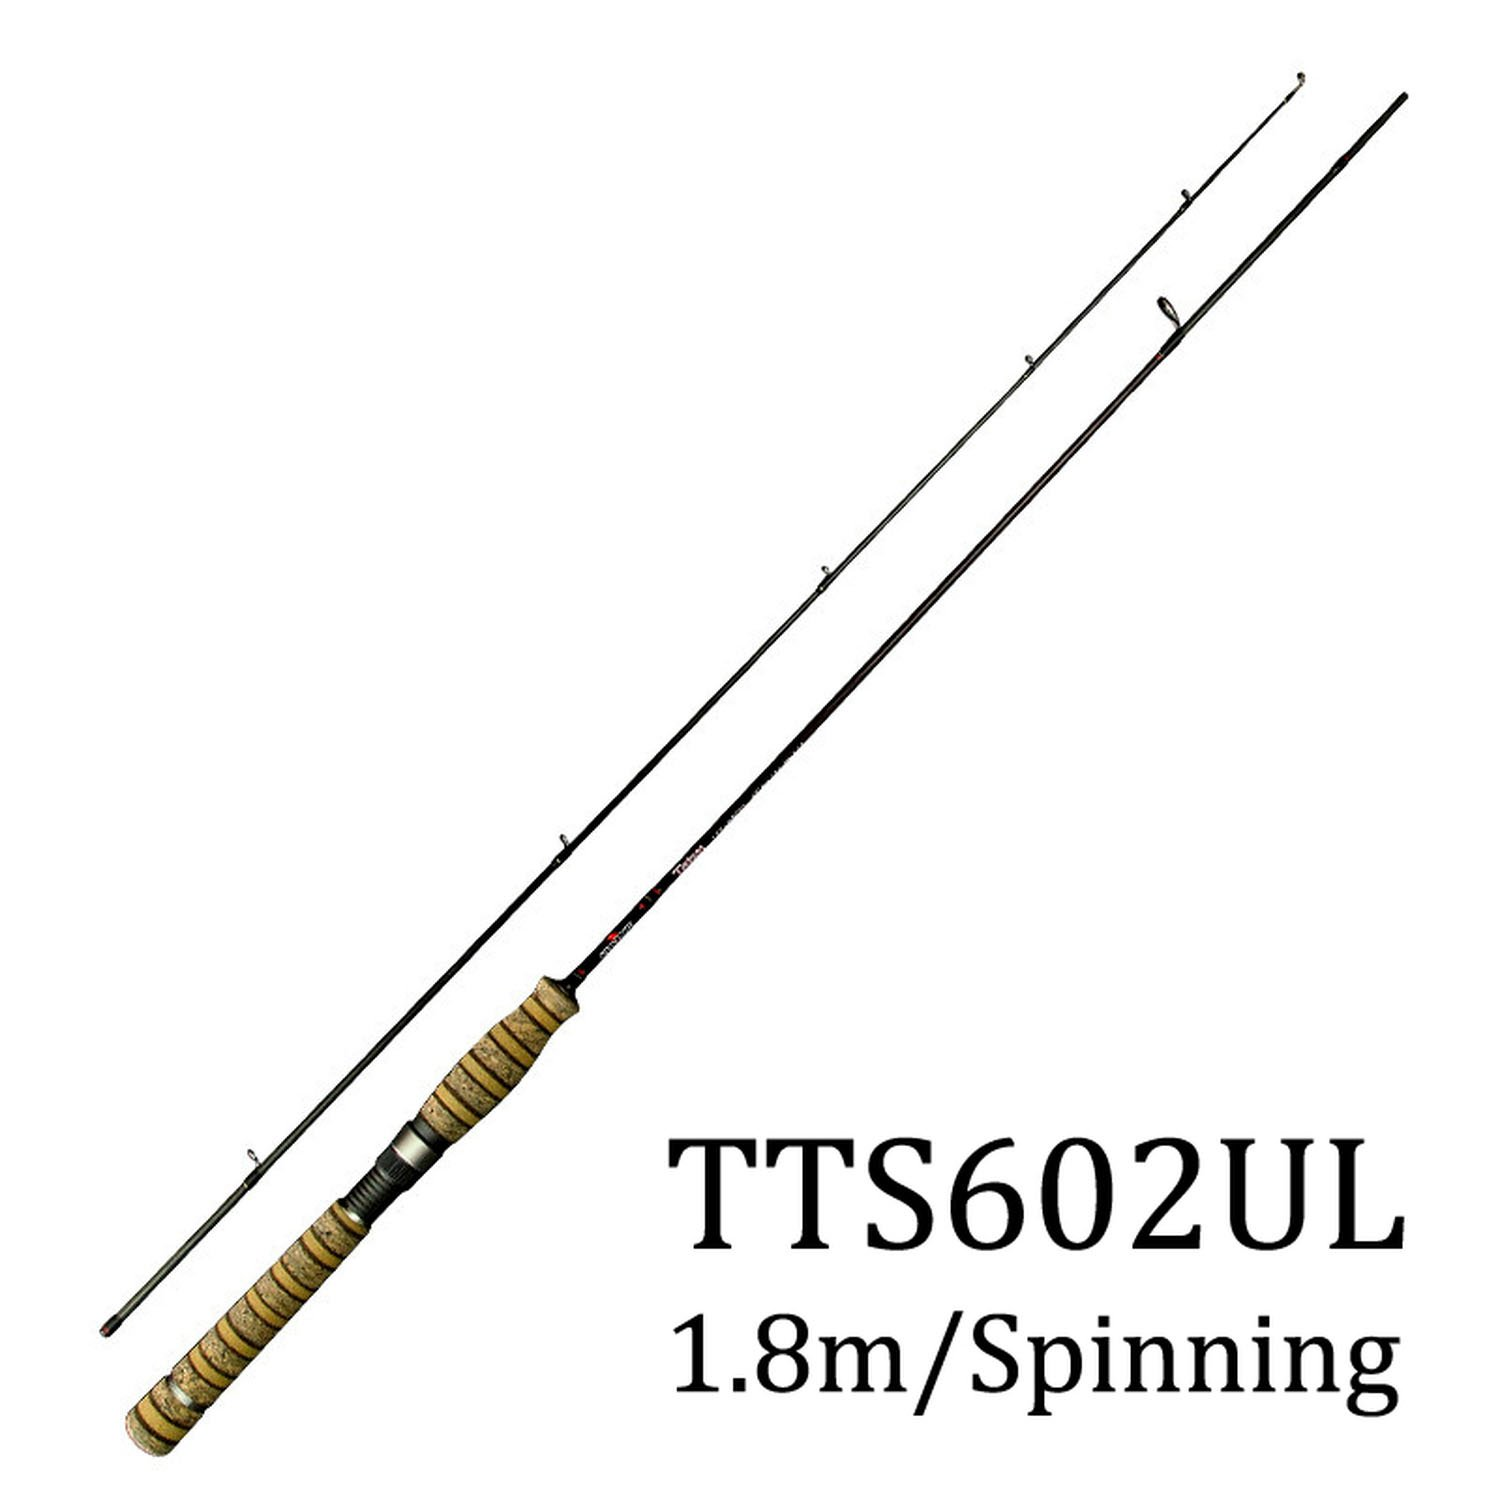 Hollday-store Fishing rod Teton - Caña de Pescar Ultra Ligera y ...